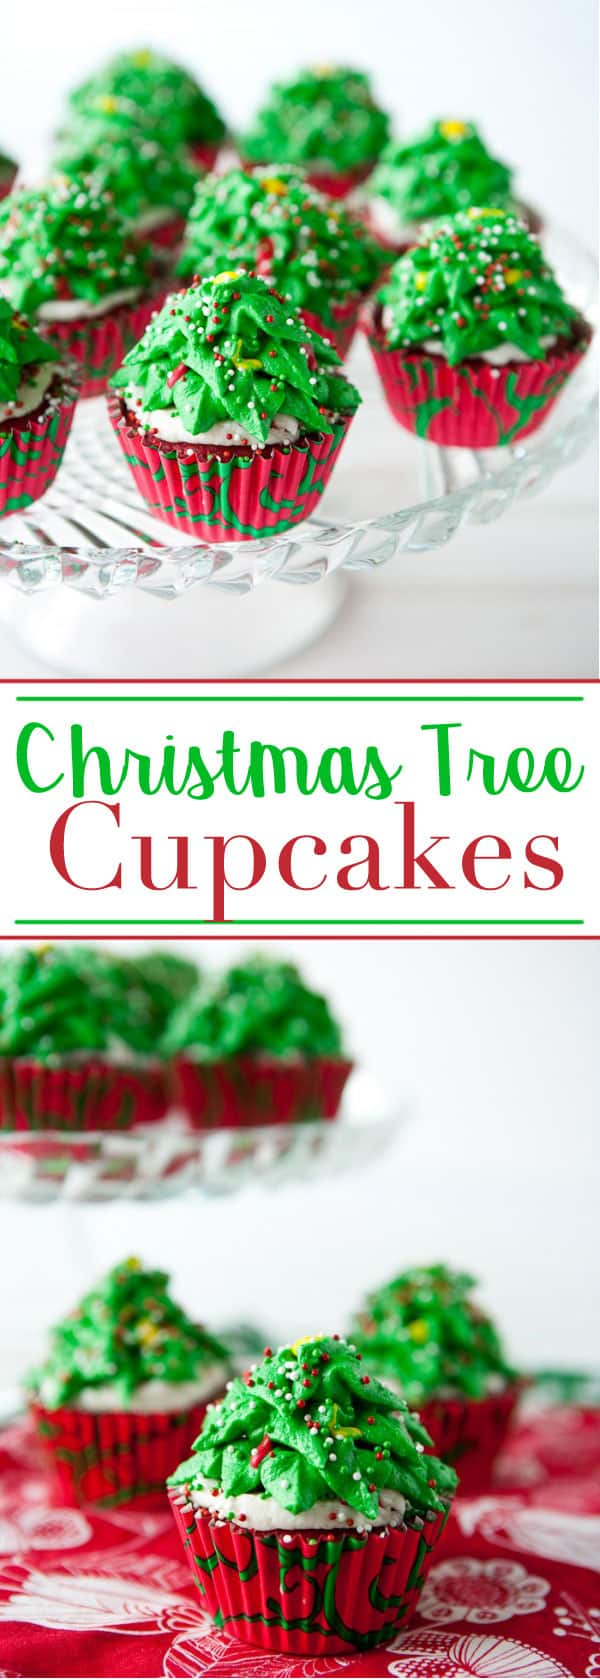 Easy to Make Christmas Tree Cupcakes are super cute and delicious! #christmas #holiday #cupcakes #christmastree